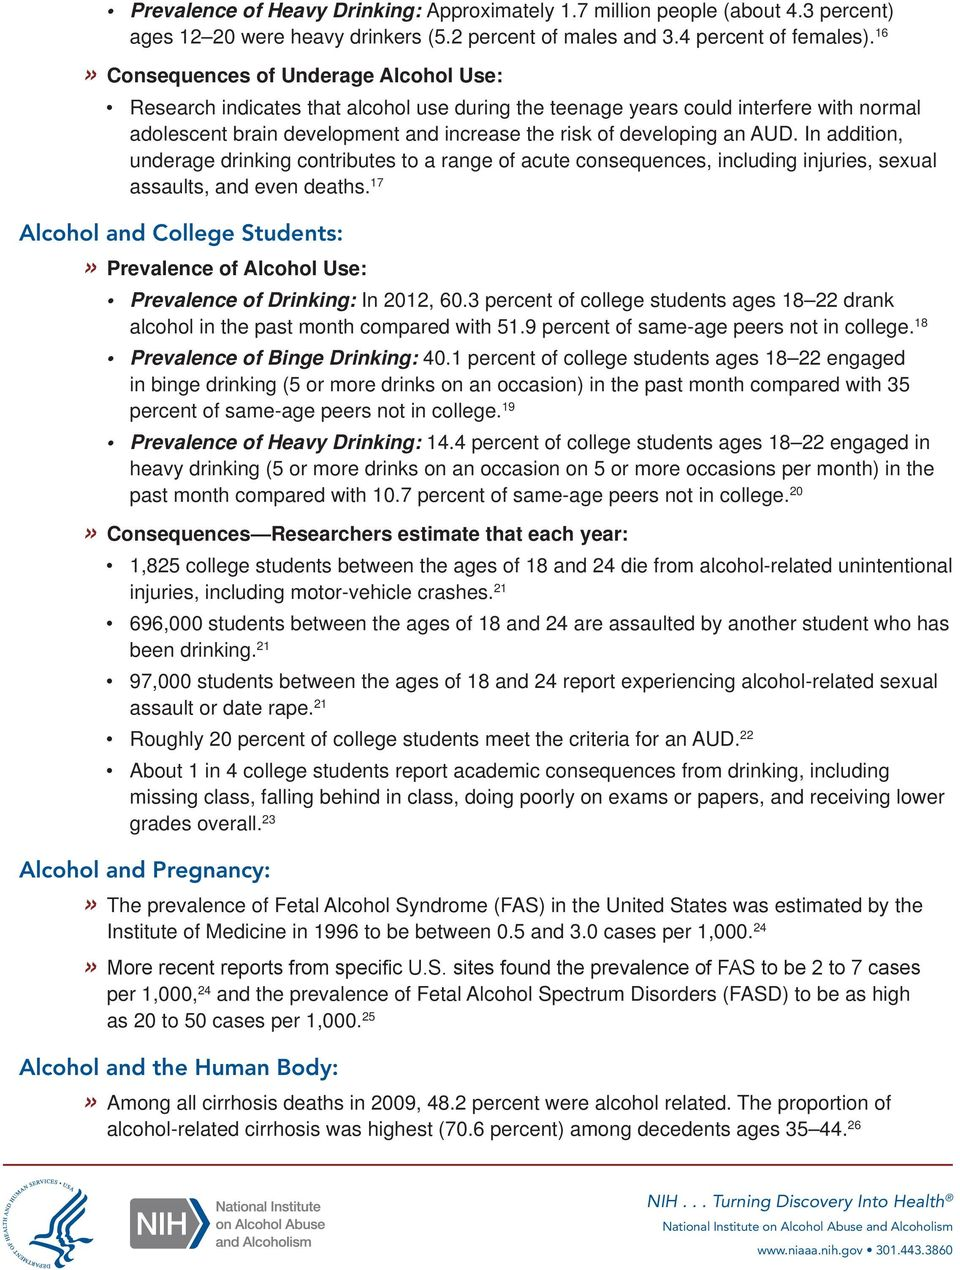 AUD. In addition, underage drinking contributes to a range of acute consequences, including injuries, sexual assaults, and even deaths.